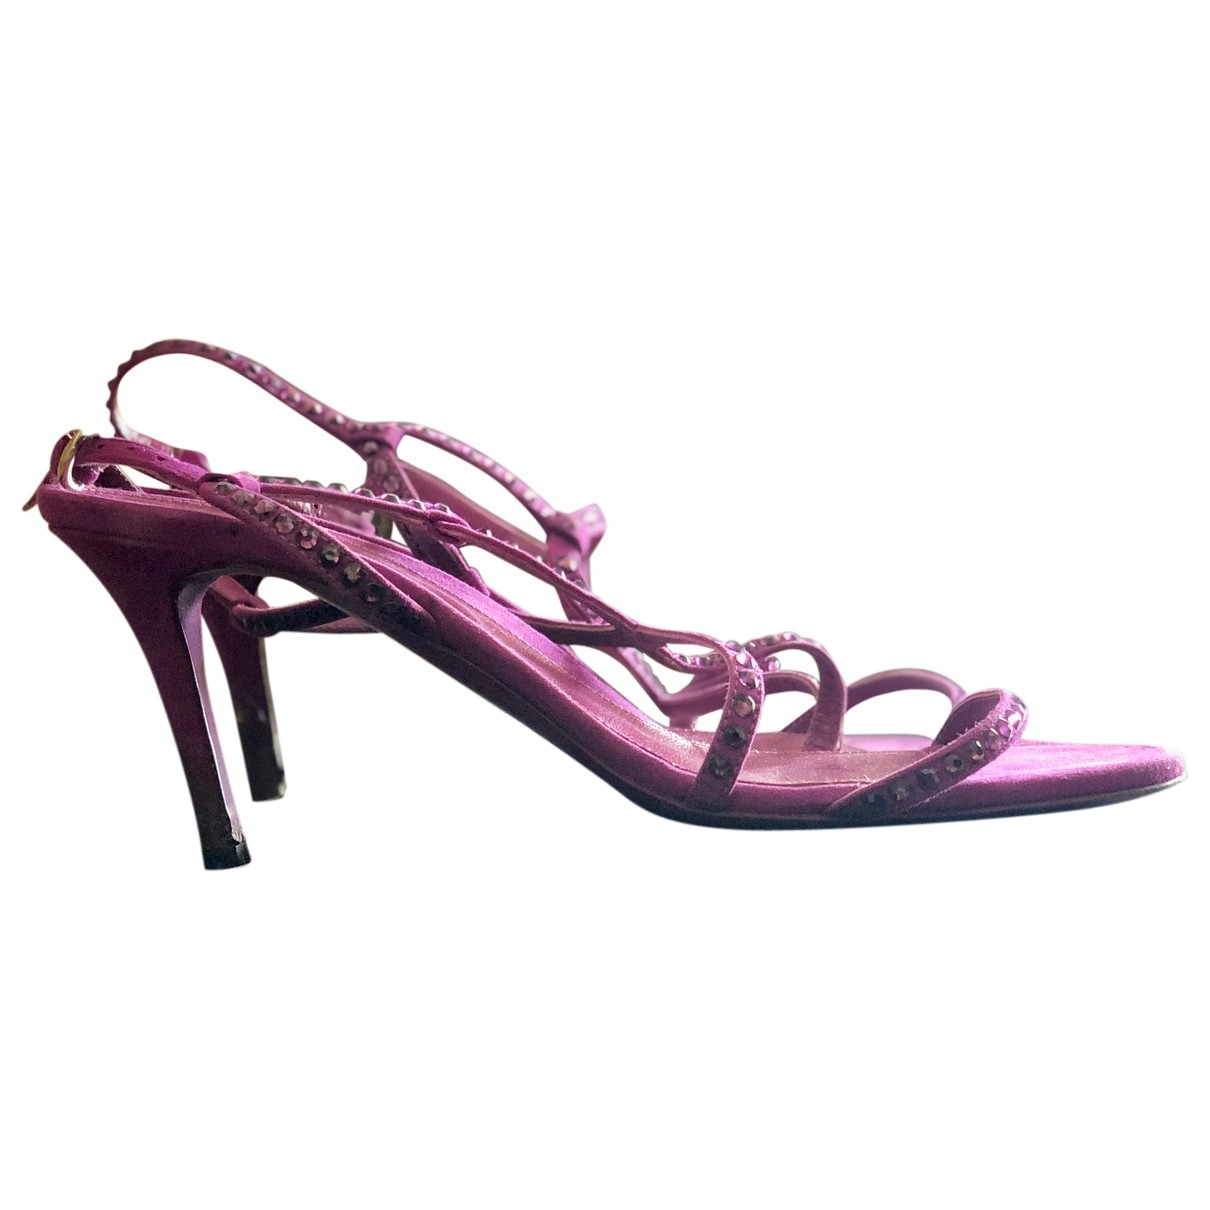 Sergio Rossi \N Pink Suede Sandals for Women 40 EU